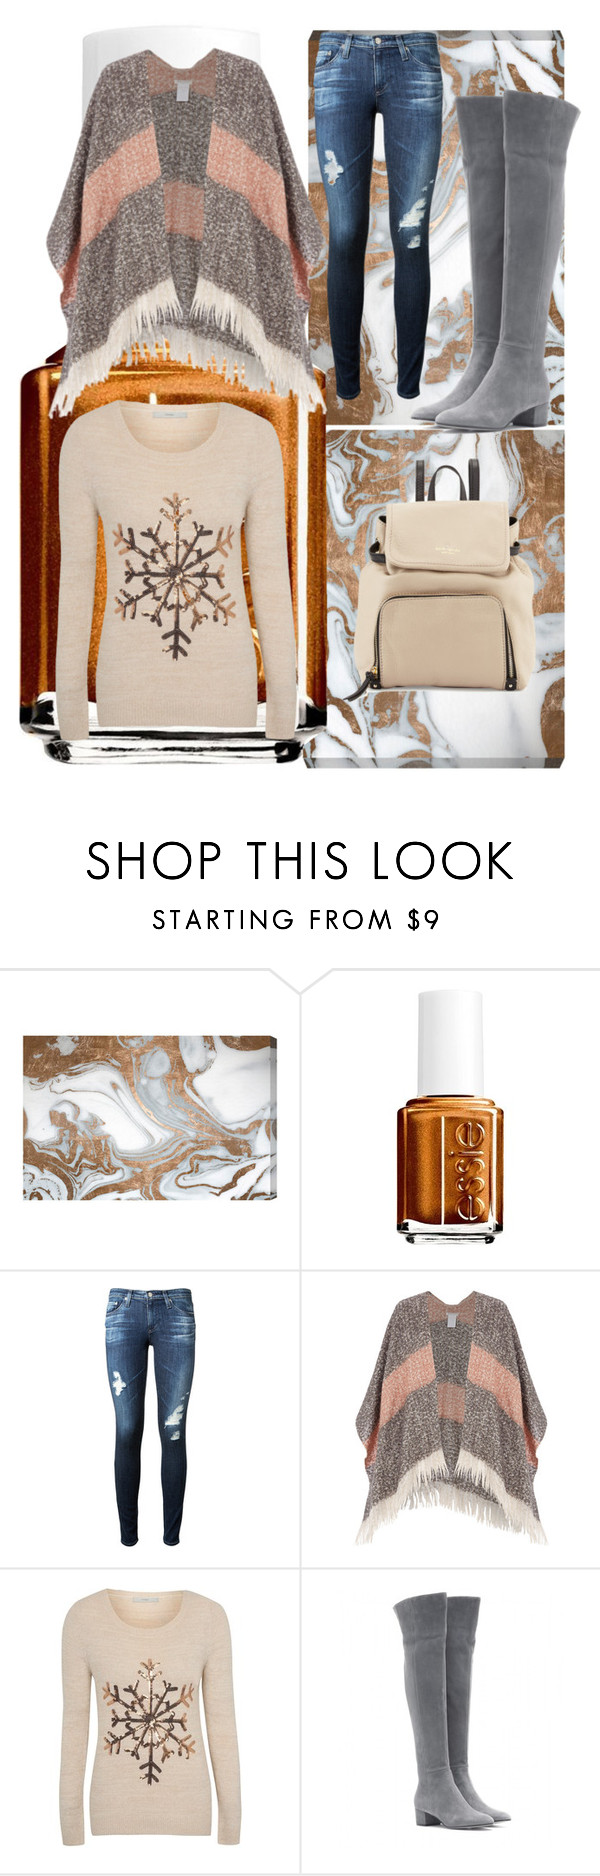 """""""Falling fast"""" by isabellarowlee on Polyvore featuring Oliver Gal Artist Co., Essie, AG Adriano Goldschmied, George, Gianvito Rossi and Kate Spade"""